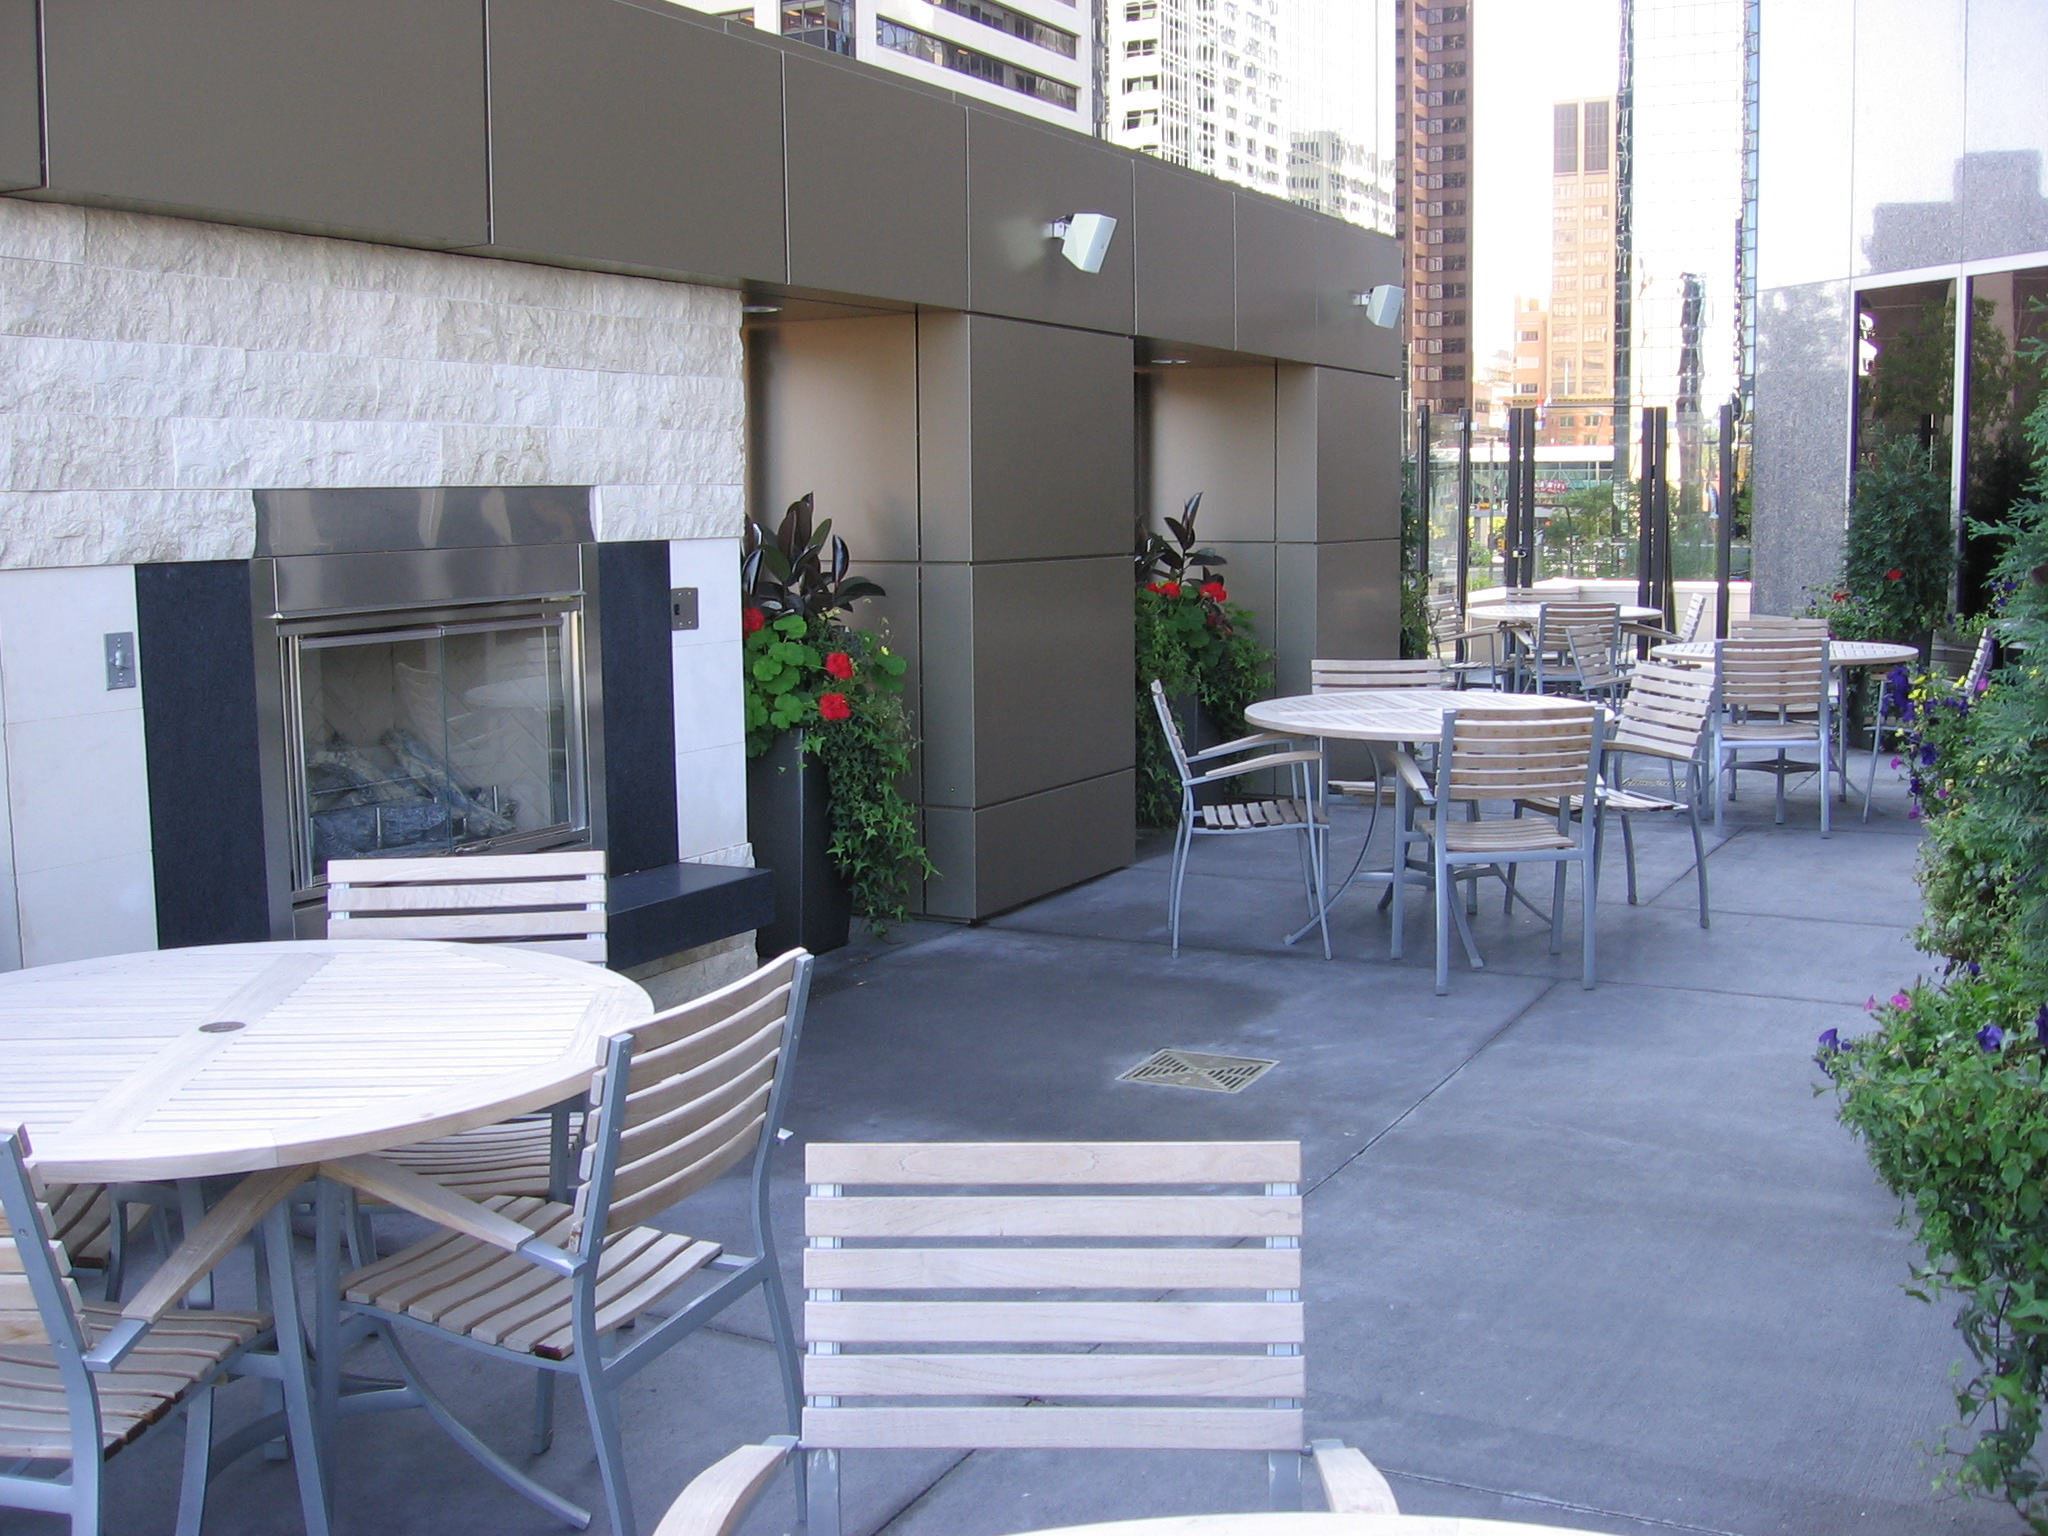 Club Lounge and Patio